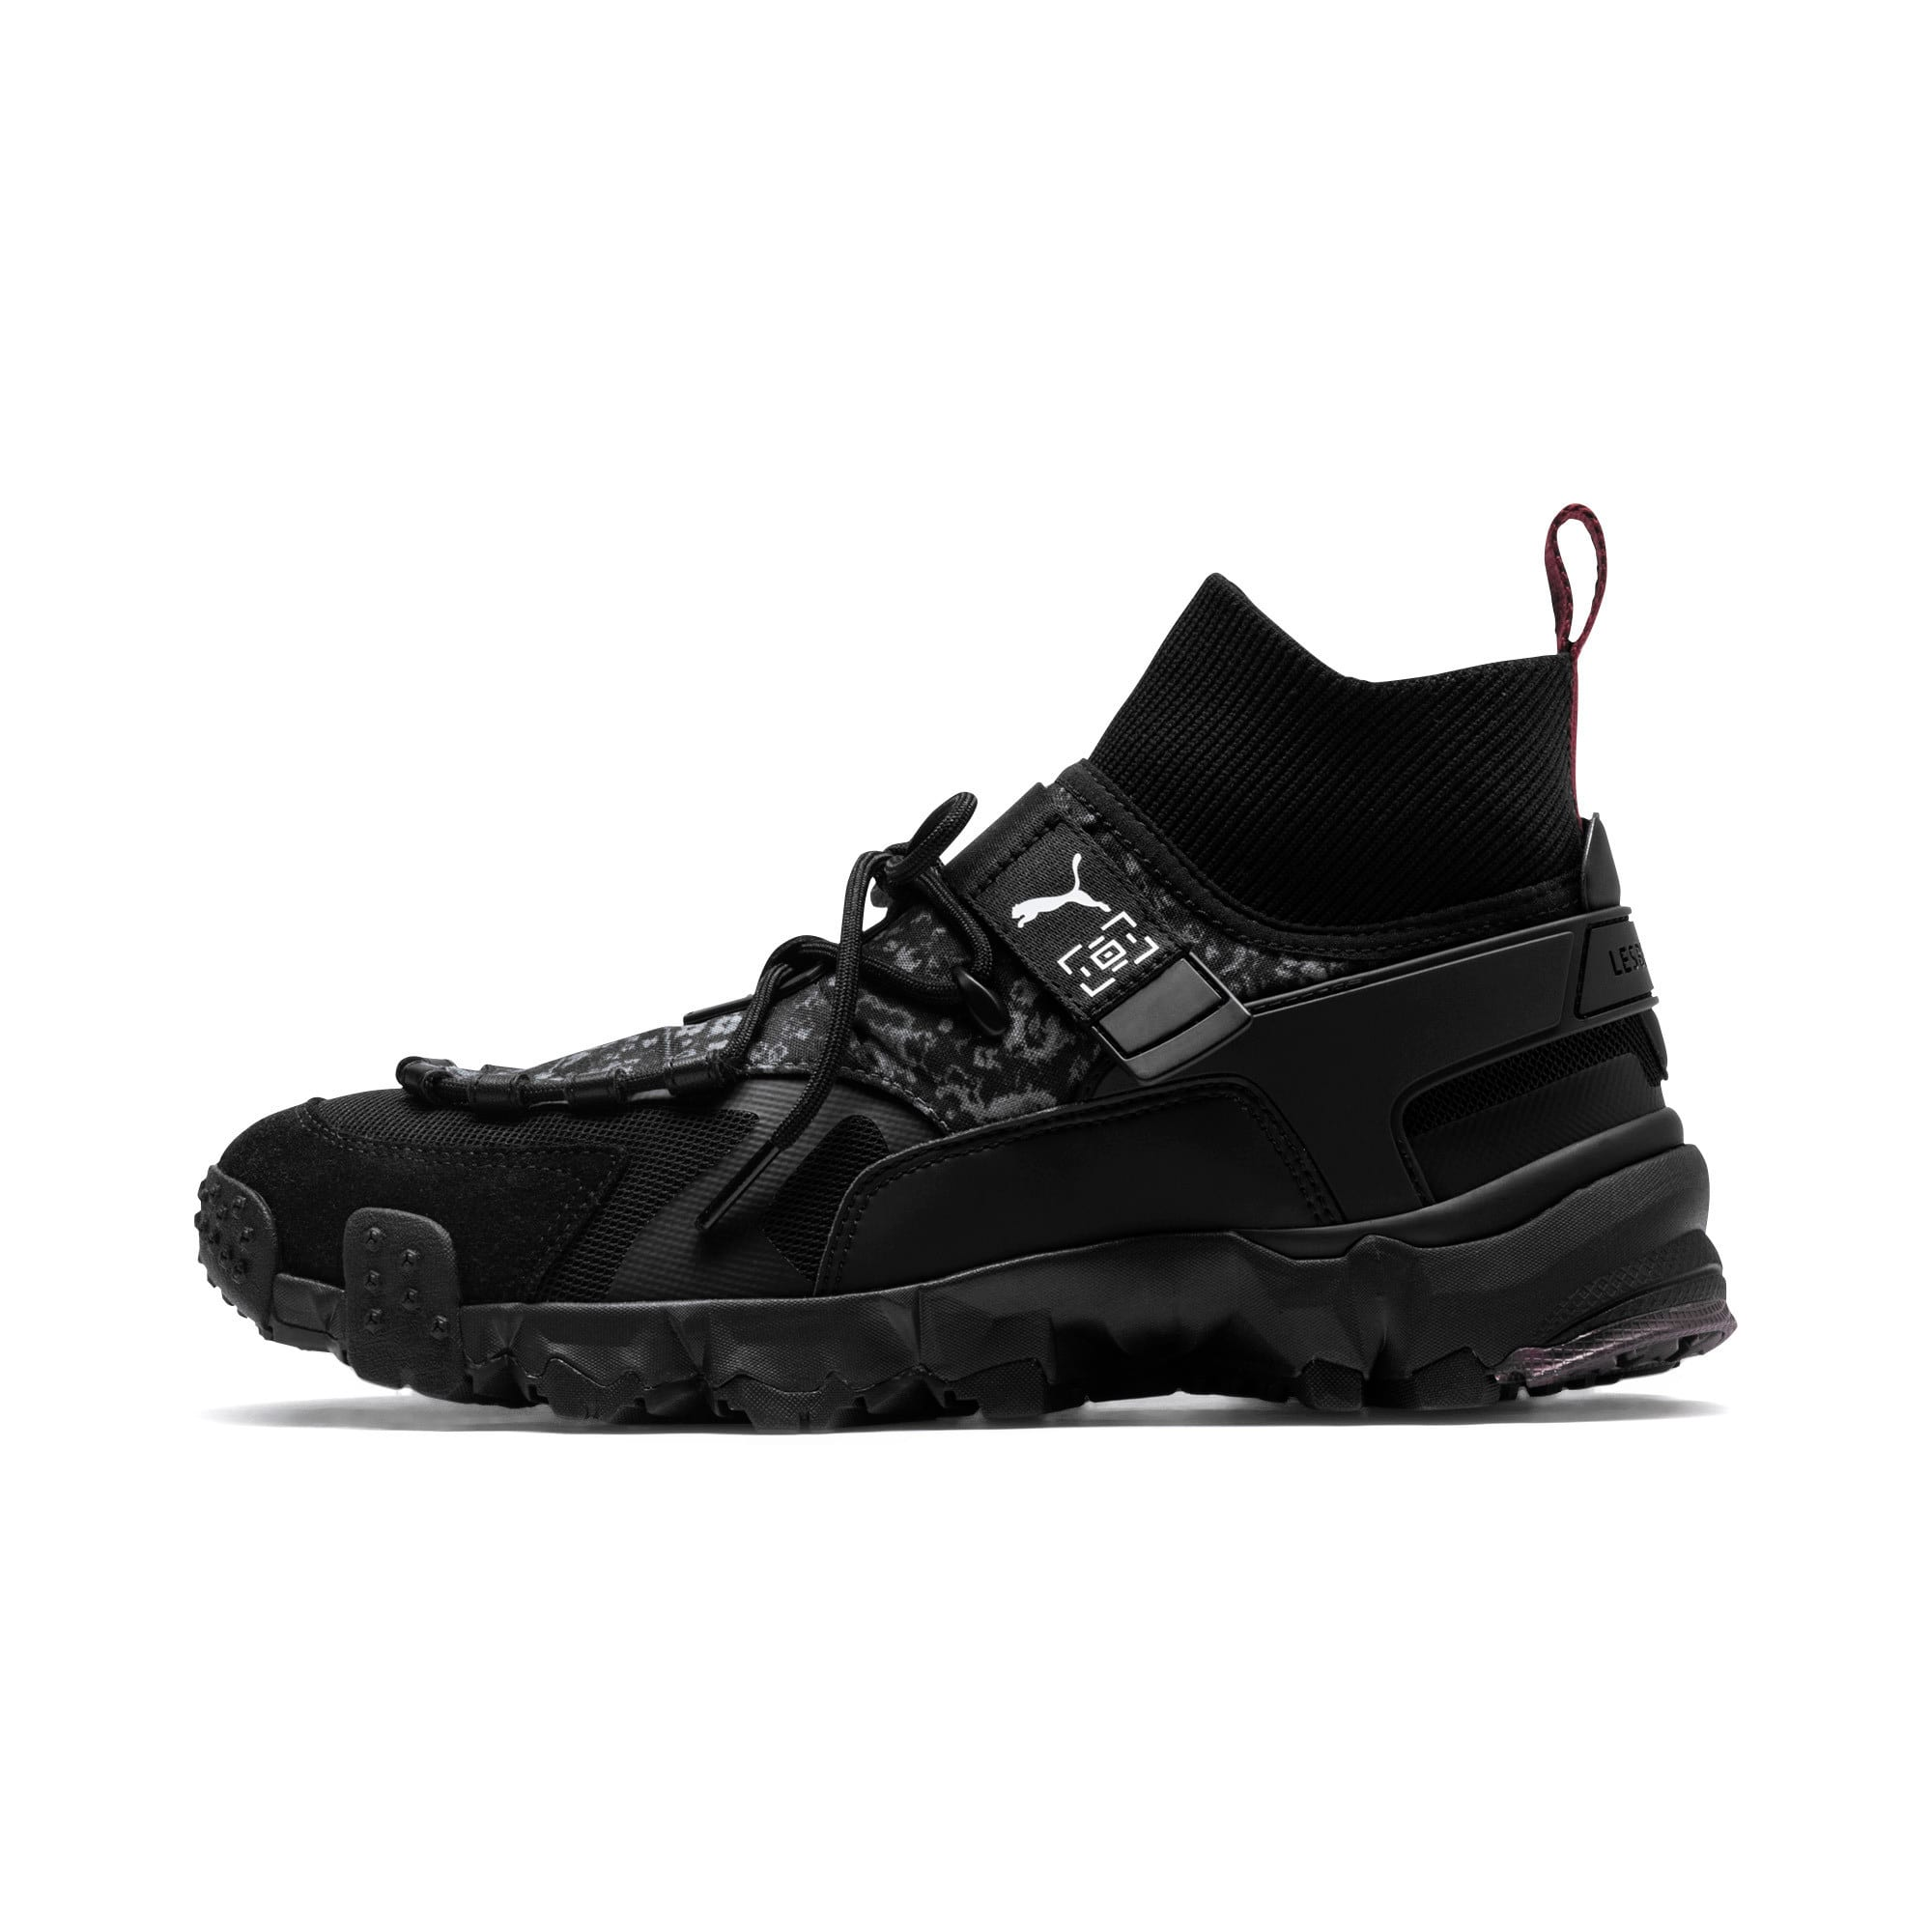 Thumbnail 1 of PUMA x LES BENJAMINS Trailfox Schuhe, Puma Black, medium